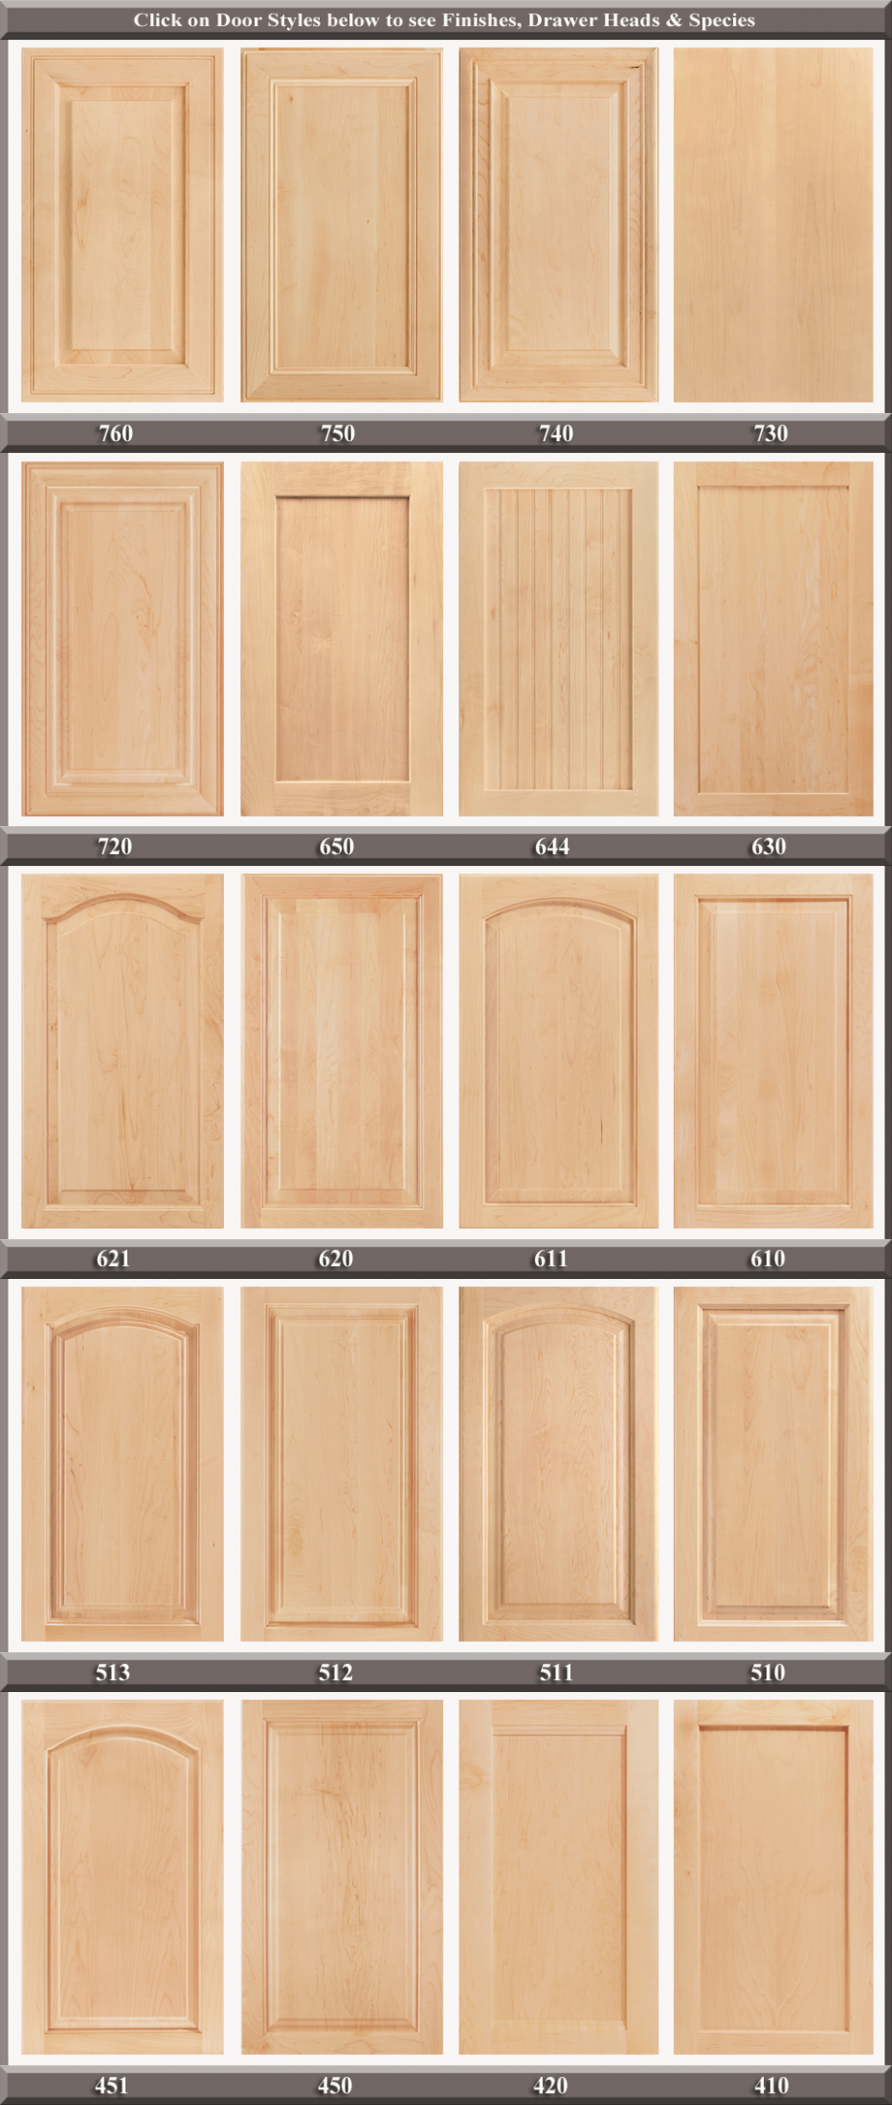 Popular Cabinet Door Styles & Finishes  Maryland Kitchen Cabinets  - Kitchen Cabinet Styles And Finishes